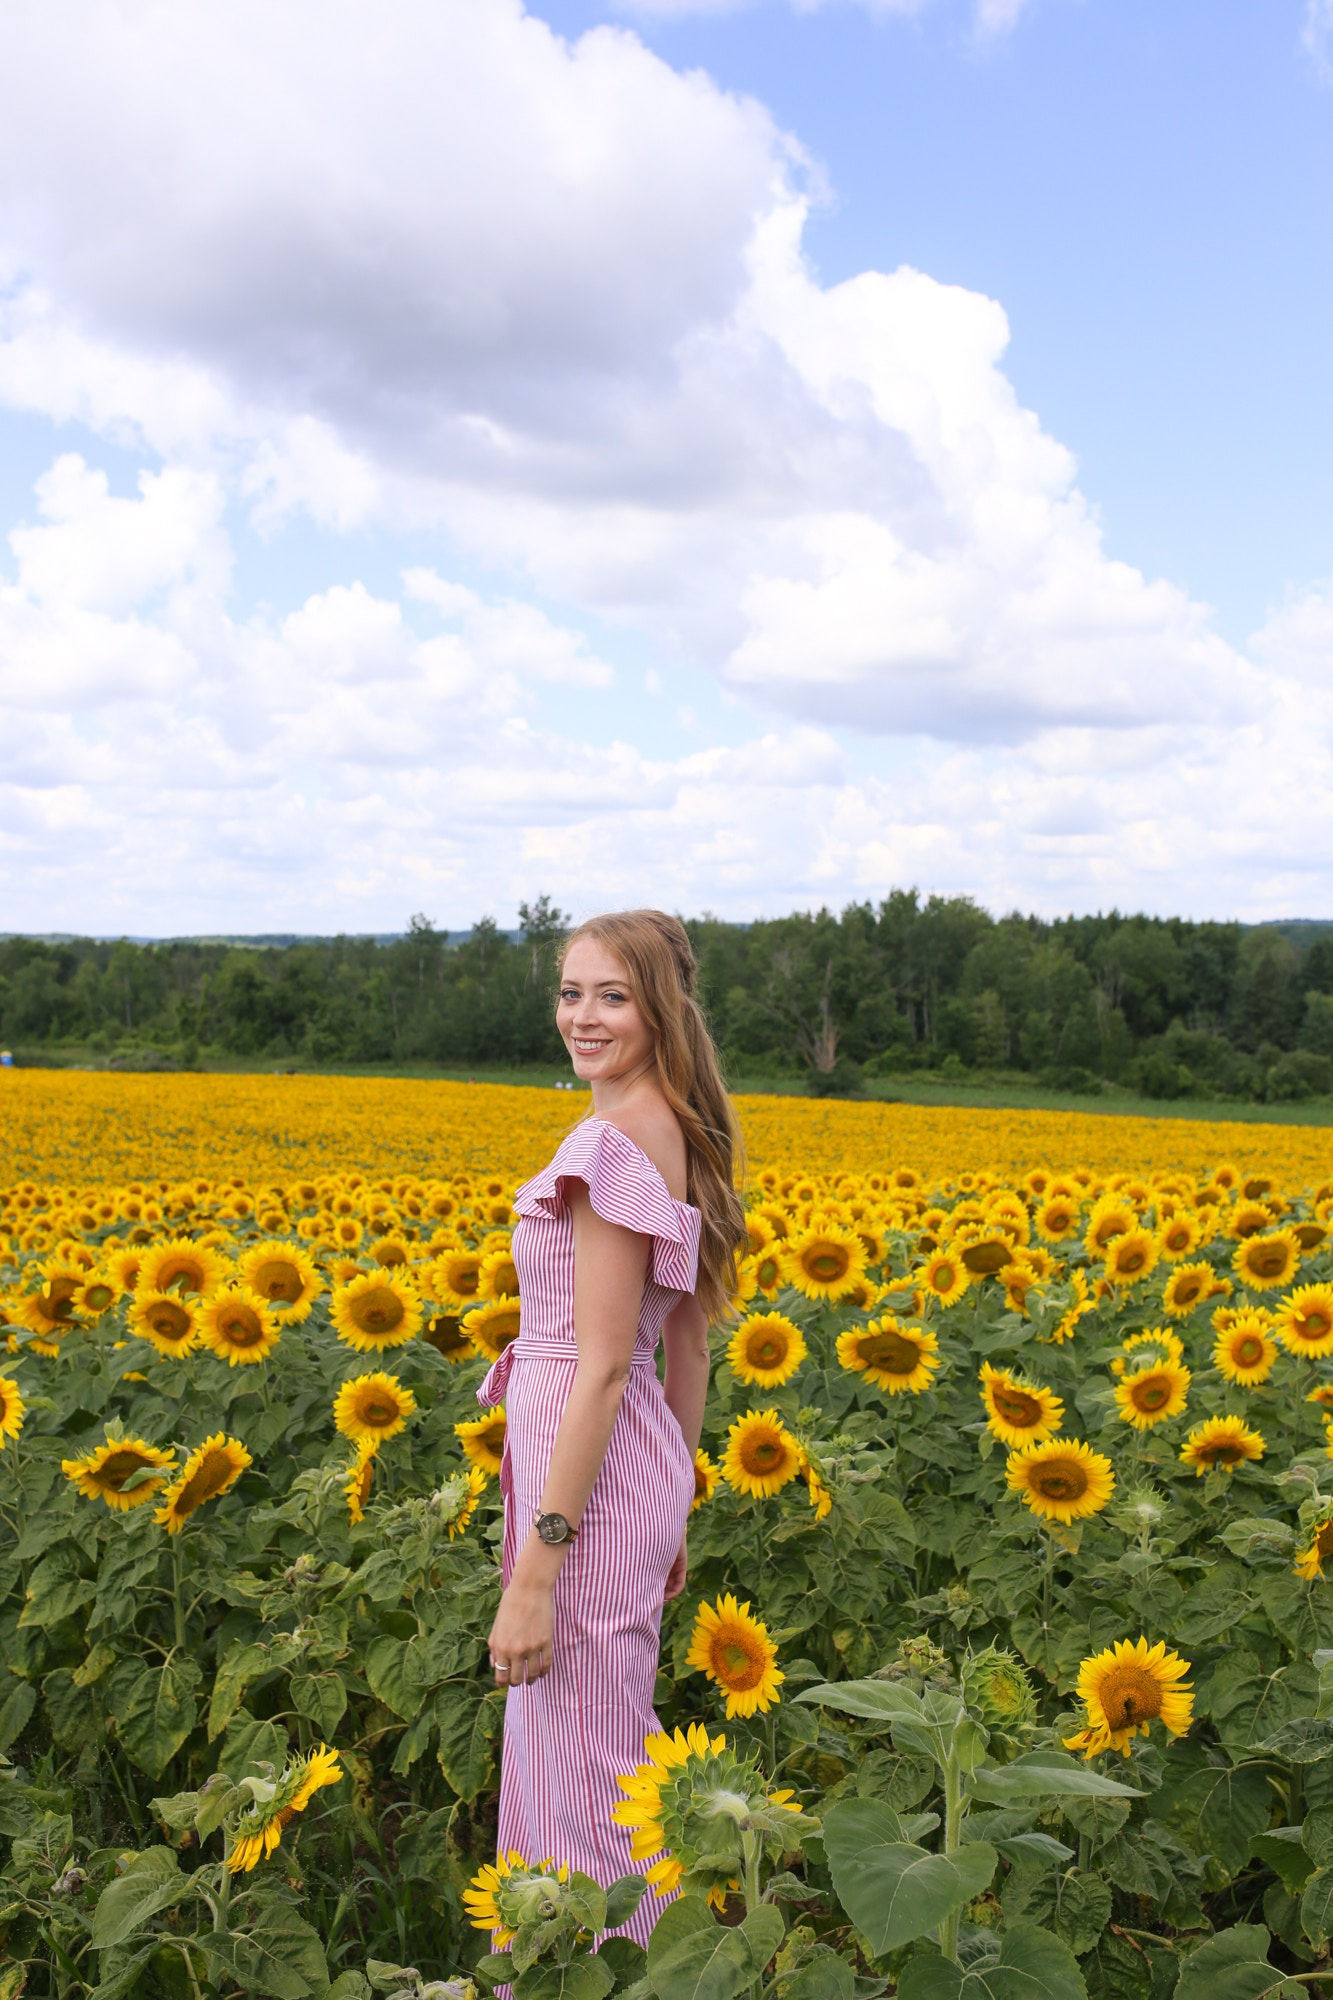 sunflower fields near toronto that are still open